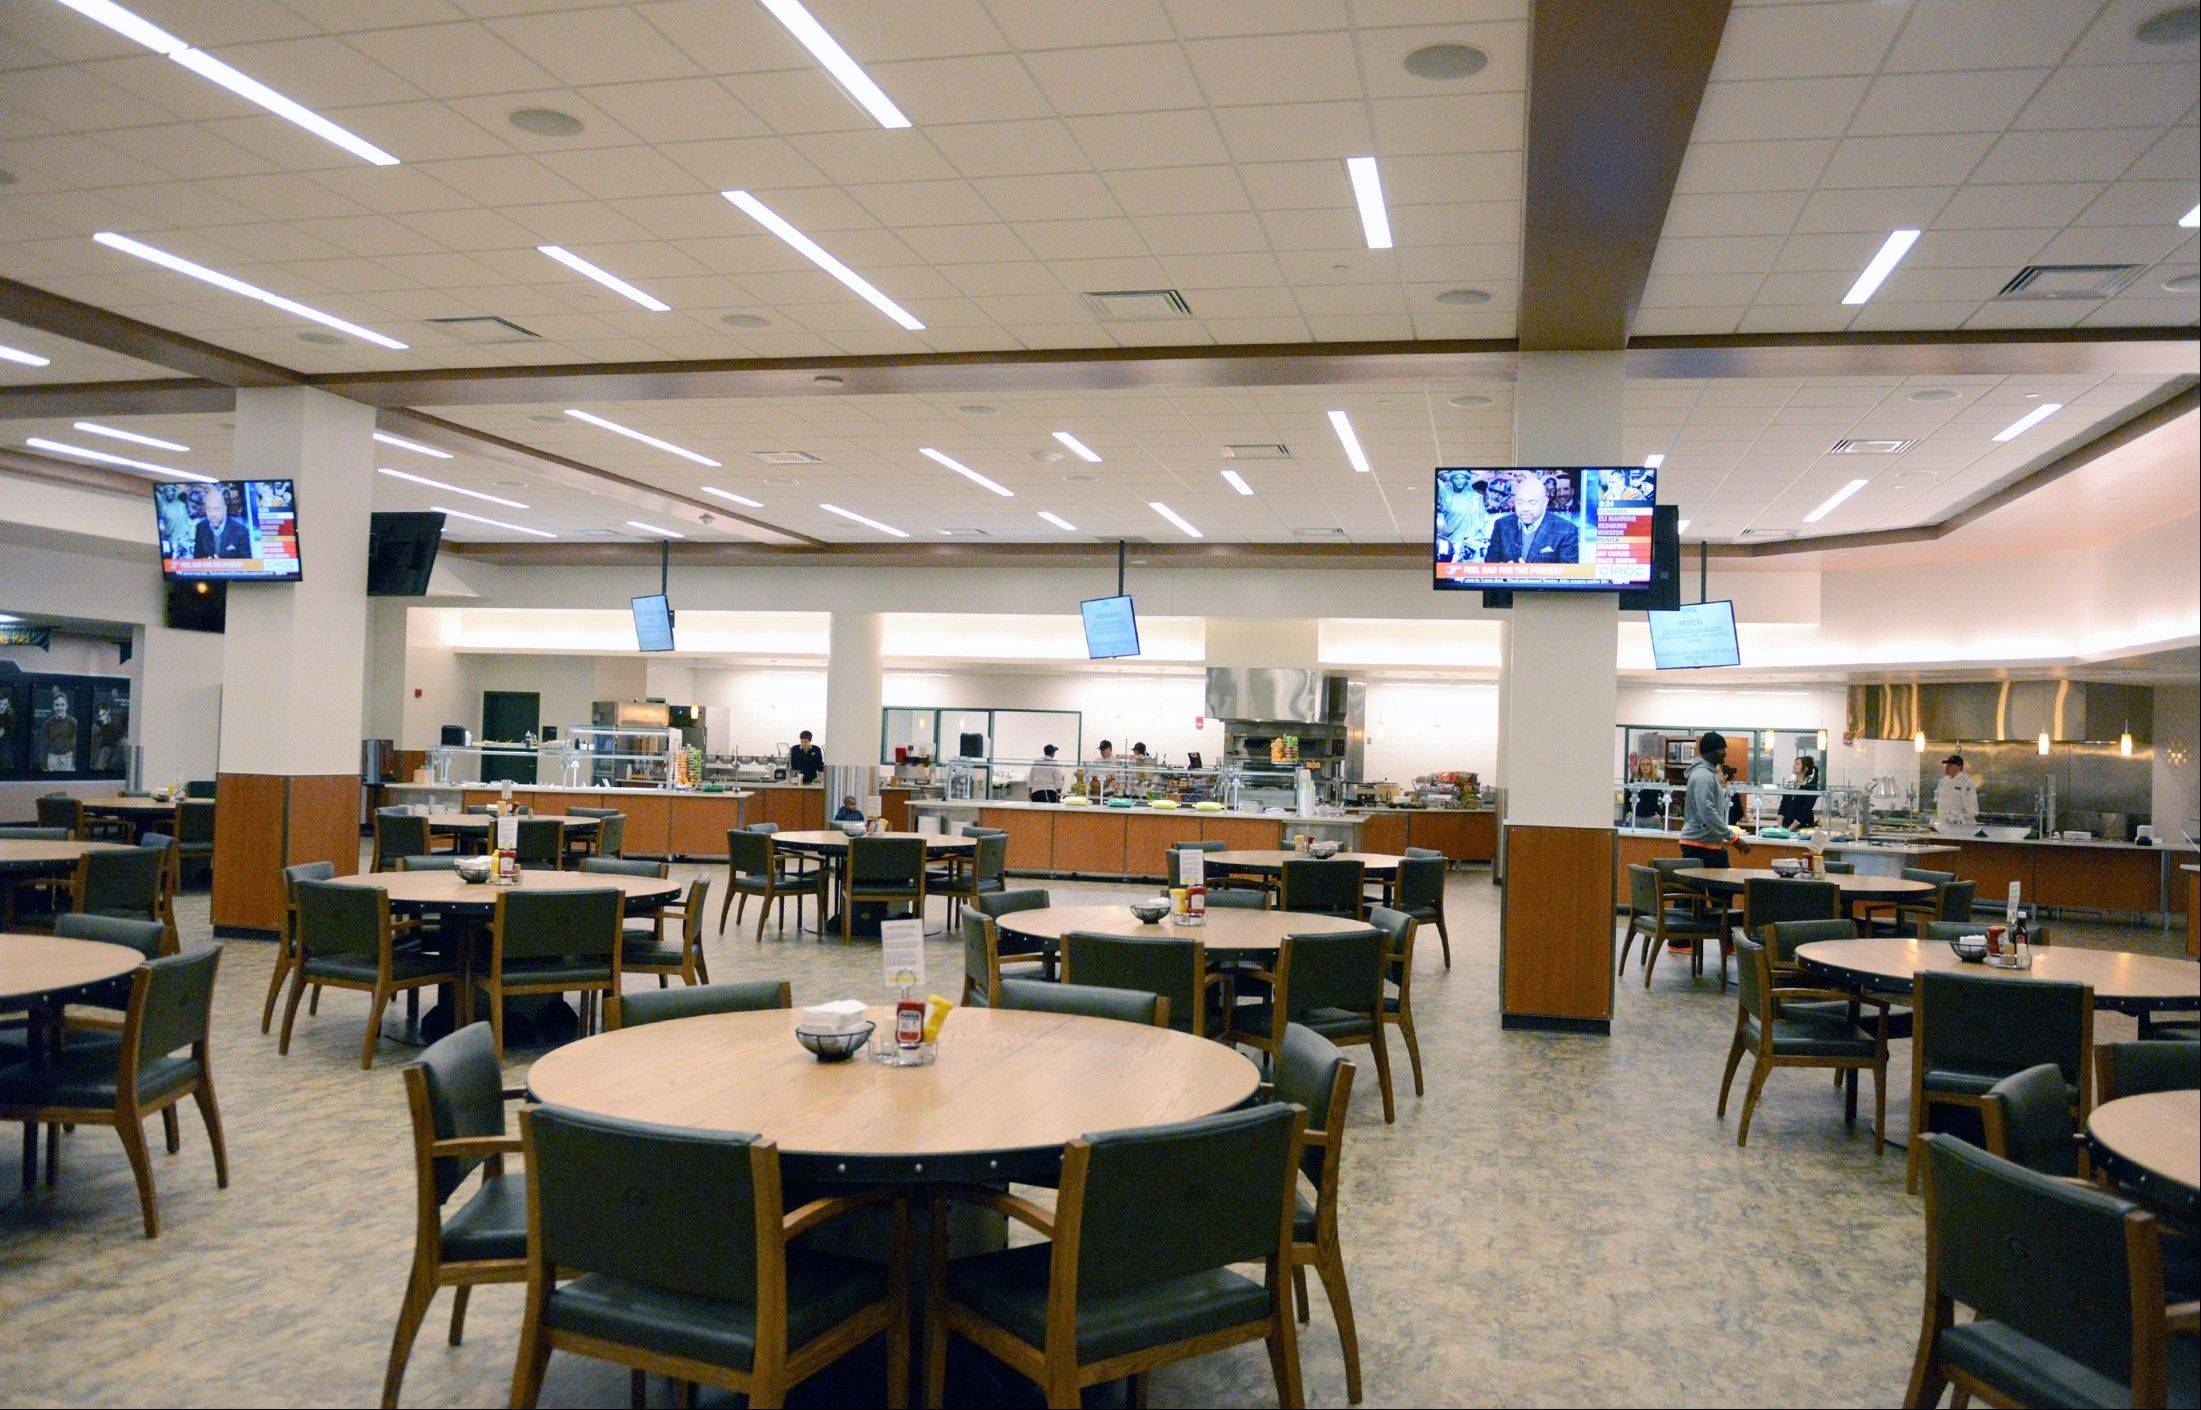 As part of the atrium expansion at Lambeau Field, the player facilities had to be moved and were upgraded in the process, including the team's cafeteria, weight room, resource area and lounge.